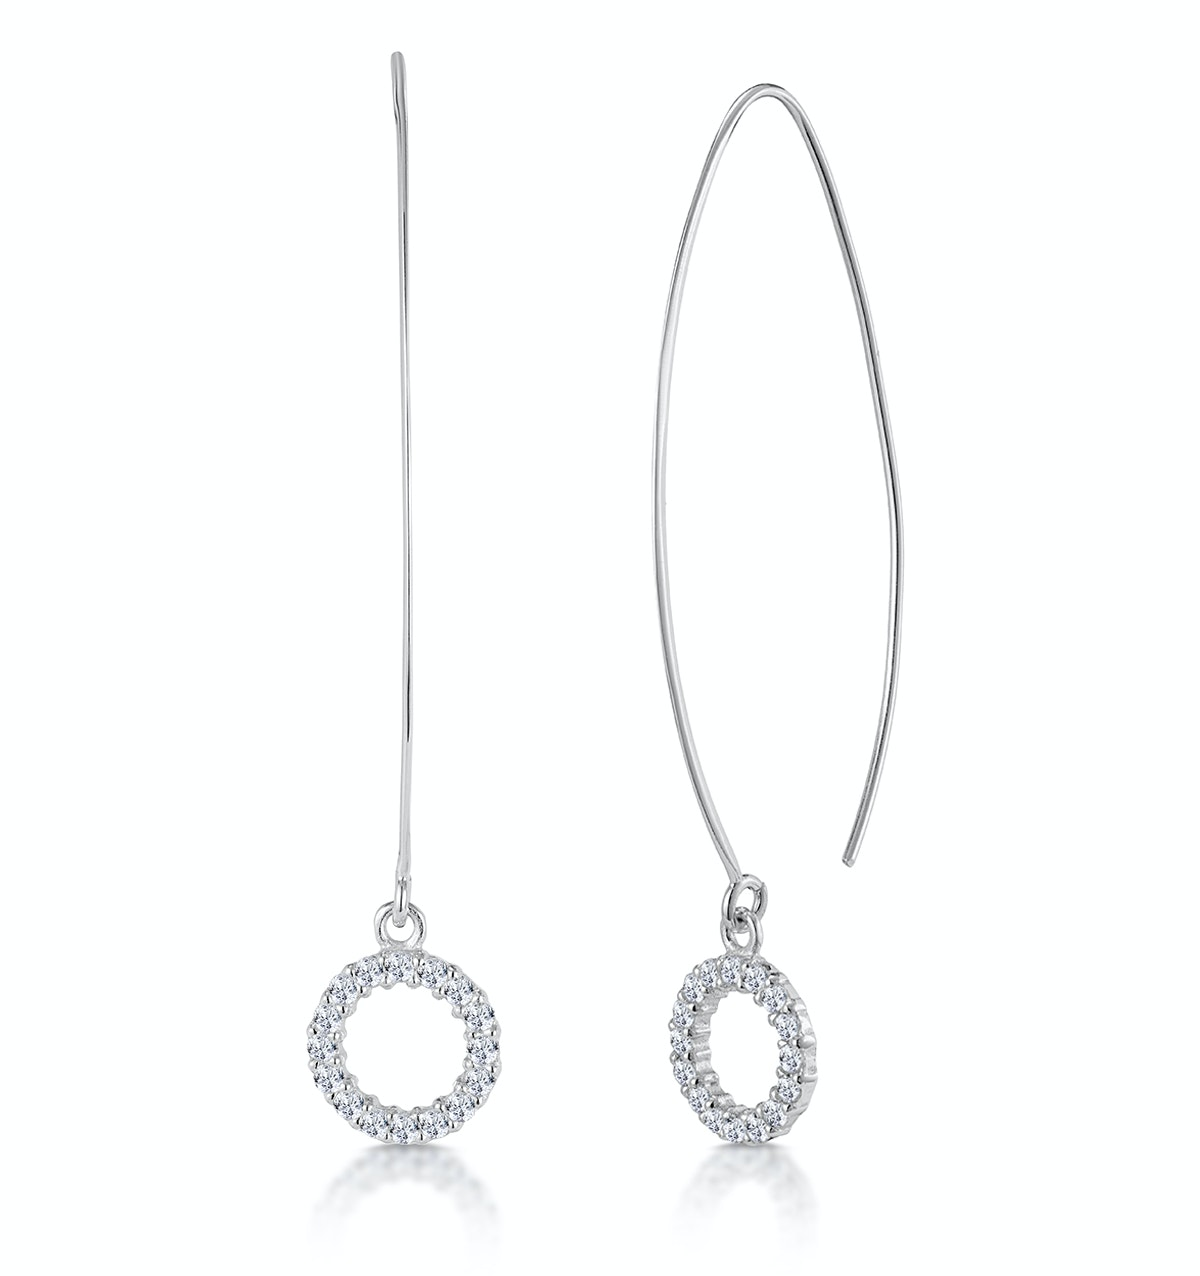 Silver Circle of Life Earrings with White Topaz - Tesoro Collection